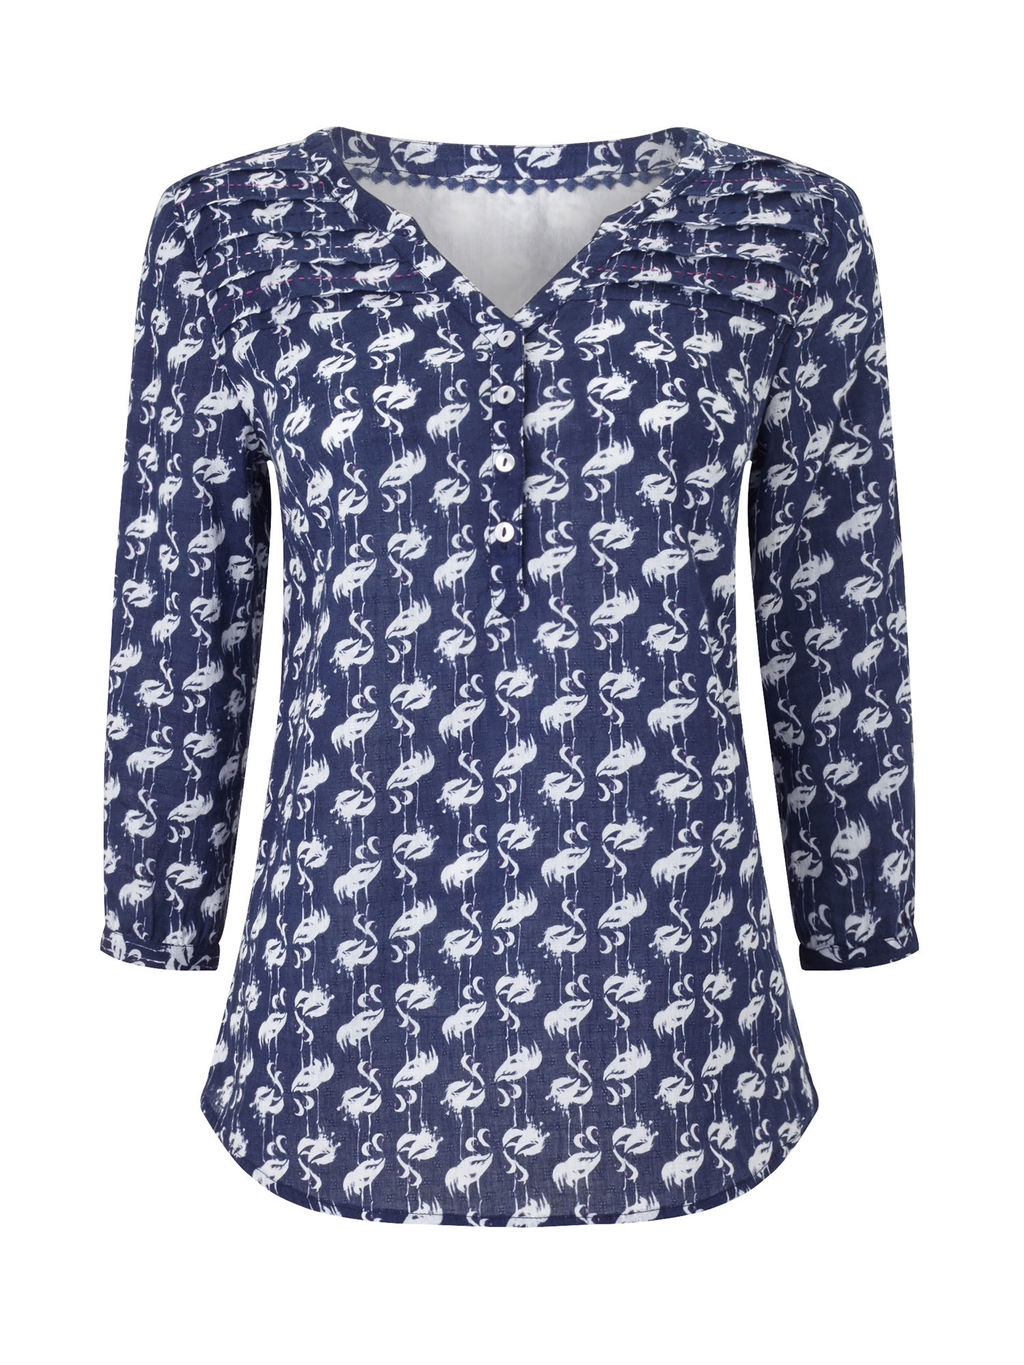 Printed Blouse - neckline: v-neck; secondary colour: white; predominant colour: navy; occasions: casual; length: standard; style: top; fibres: cotton - 100%; fit: body skimming; sleeve length: long sleeve; sleeve style: standard; pattern type: fabric; pattern: patterned/print; texture group: jersey - stretchy/drapey; multicoloured: multicoloured; season: s/s 2016; wardrobe: highlight